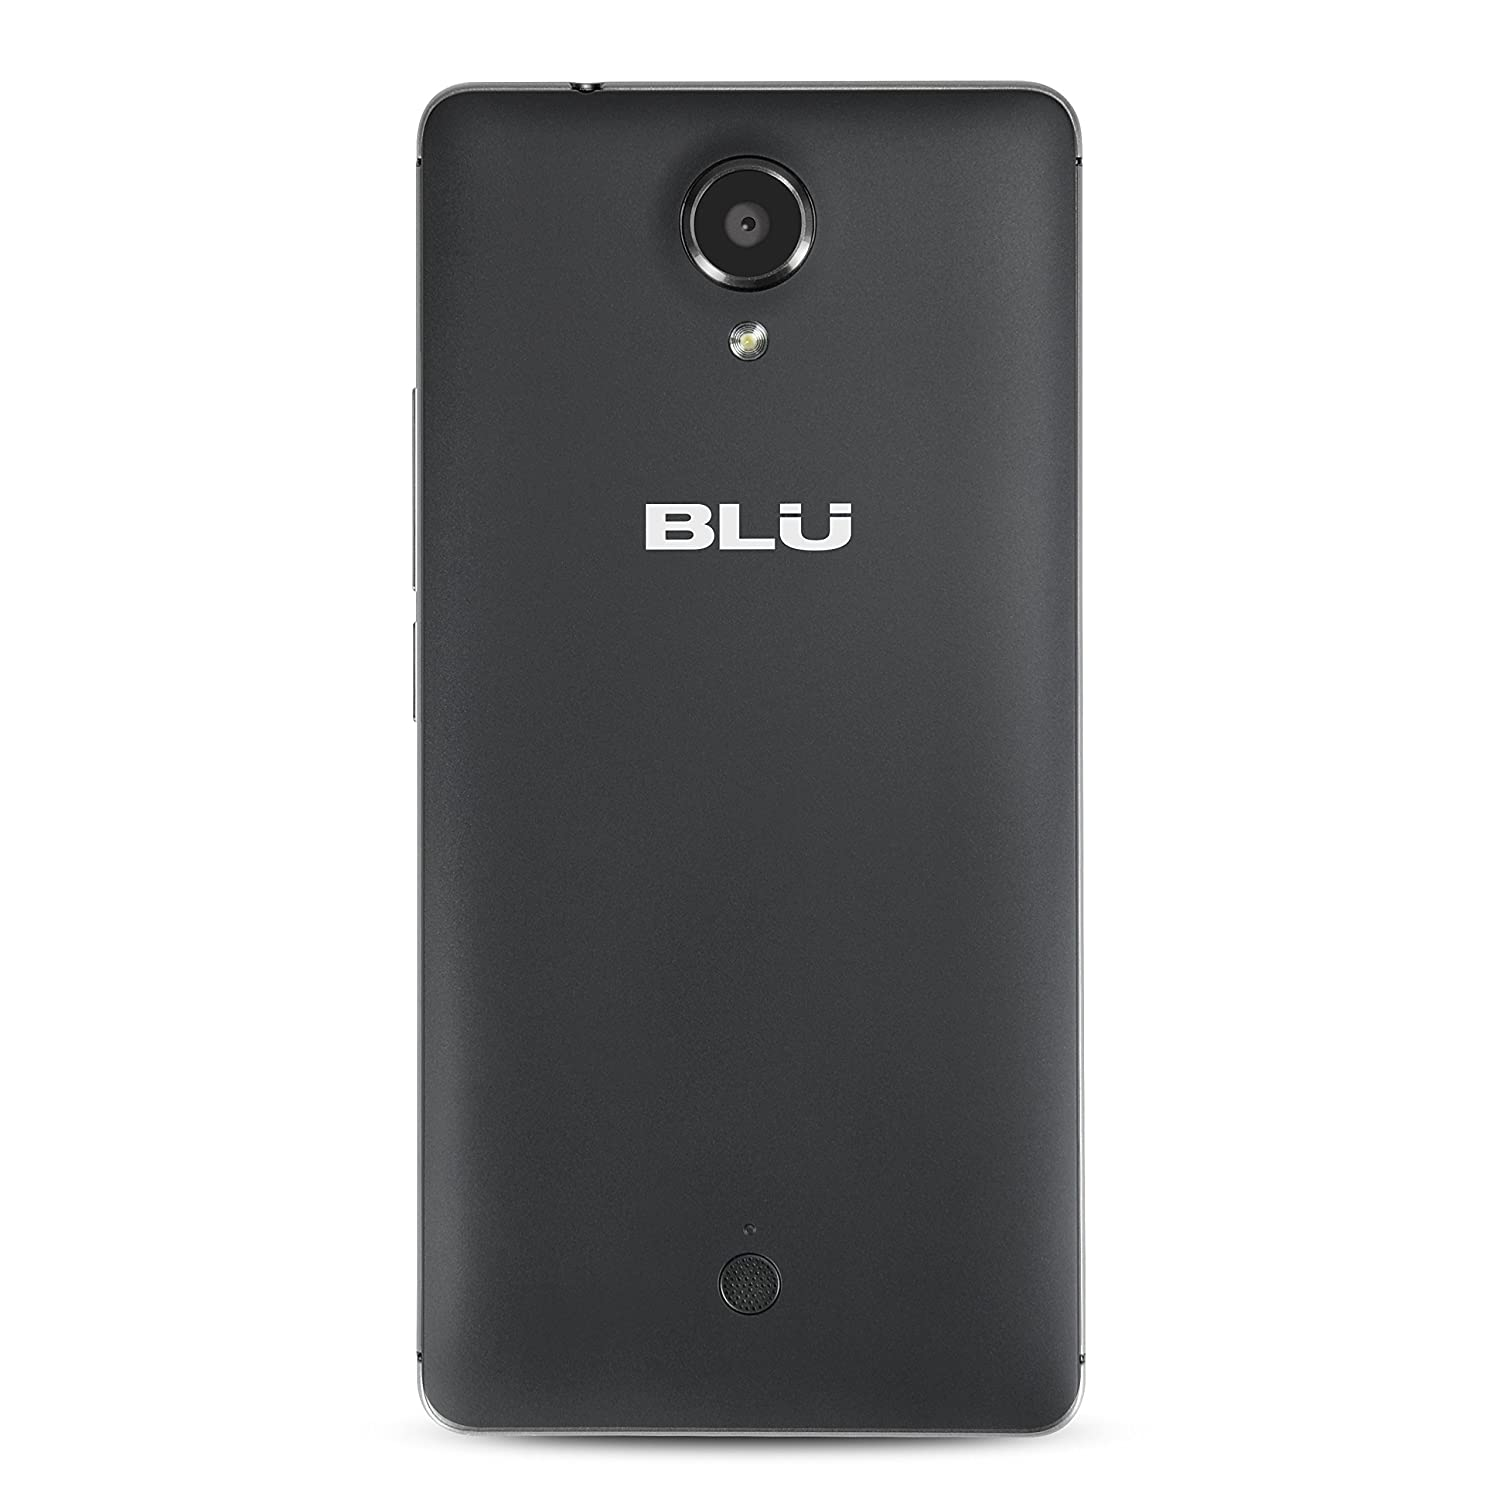 amazon com blu r1 hd cell phone 16gb black cell phones